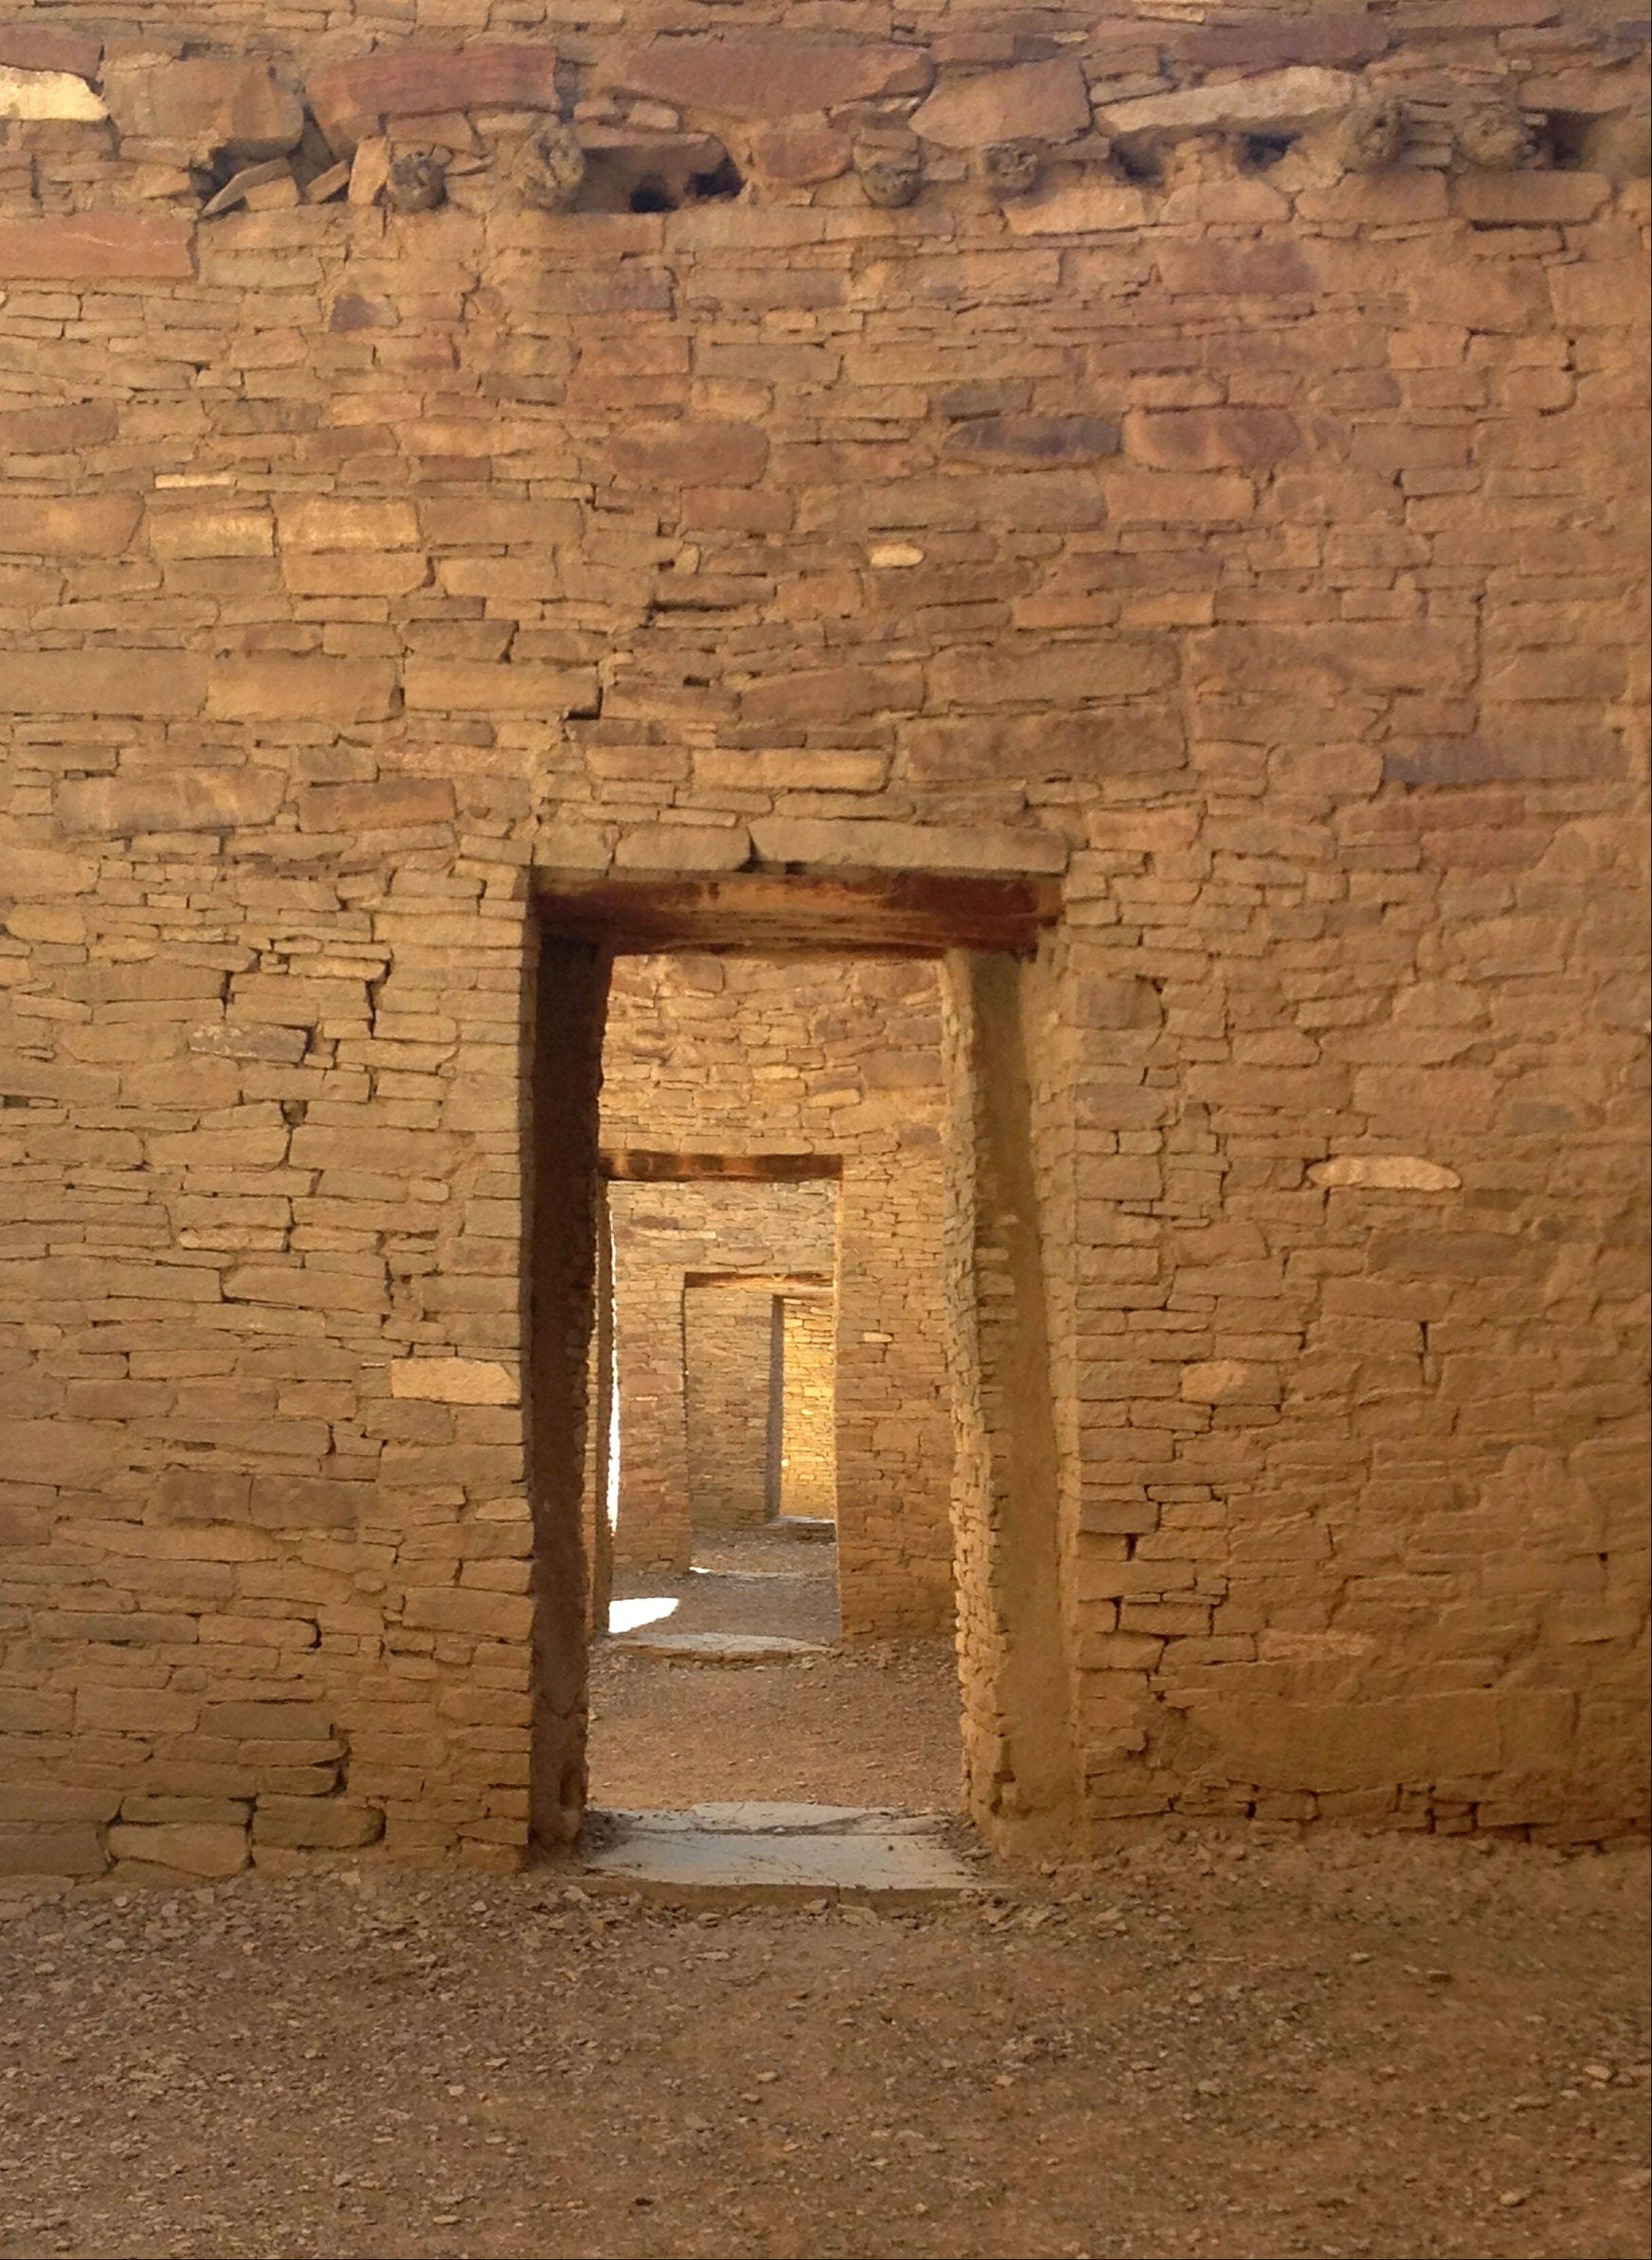 A visit to Pueblo Bonito in Chaco Canyon provides a glimpse into the way the original habitants lived.